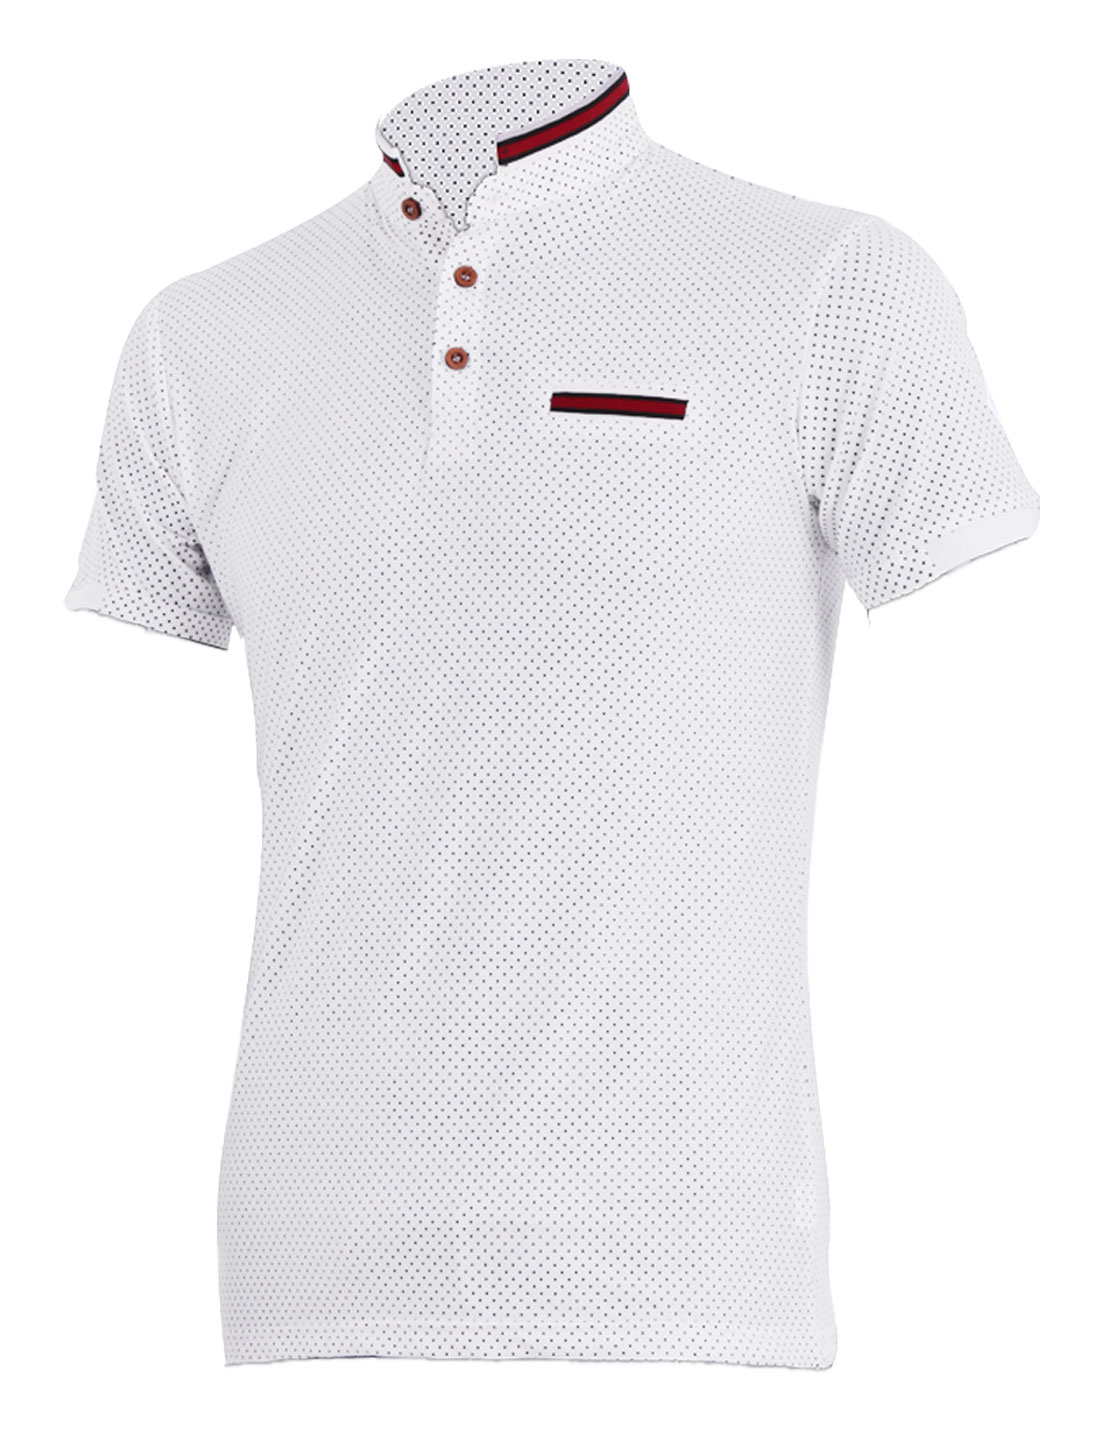 Man New Fashion Point Collar Short Sleeve Dots Pattern White Polo Shirt S